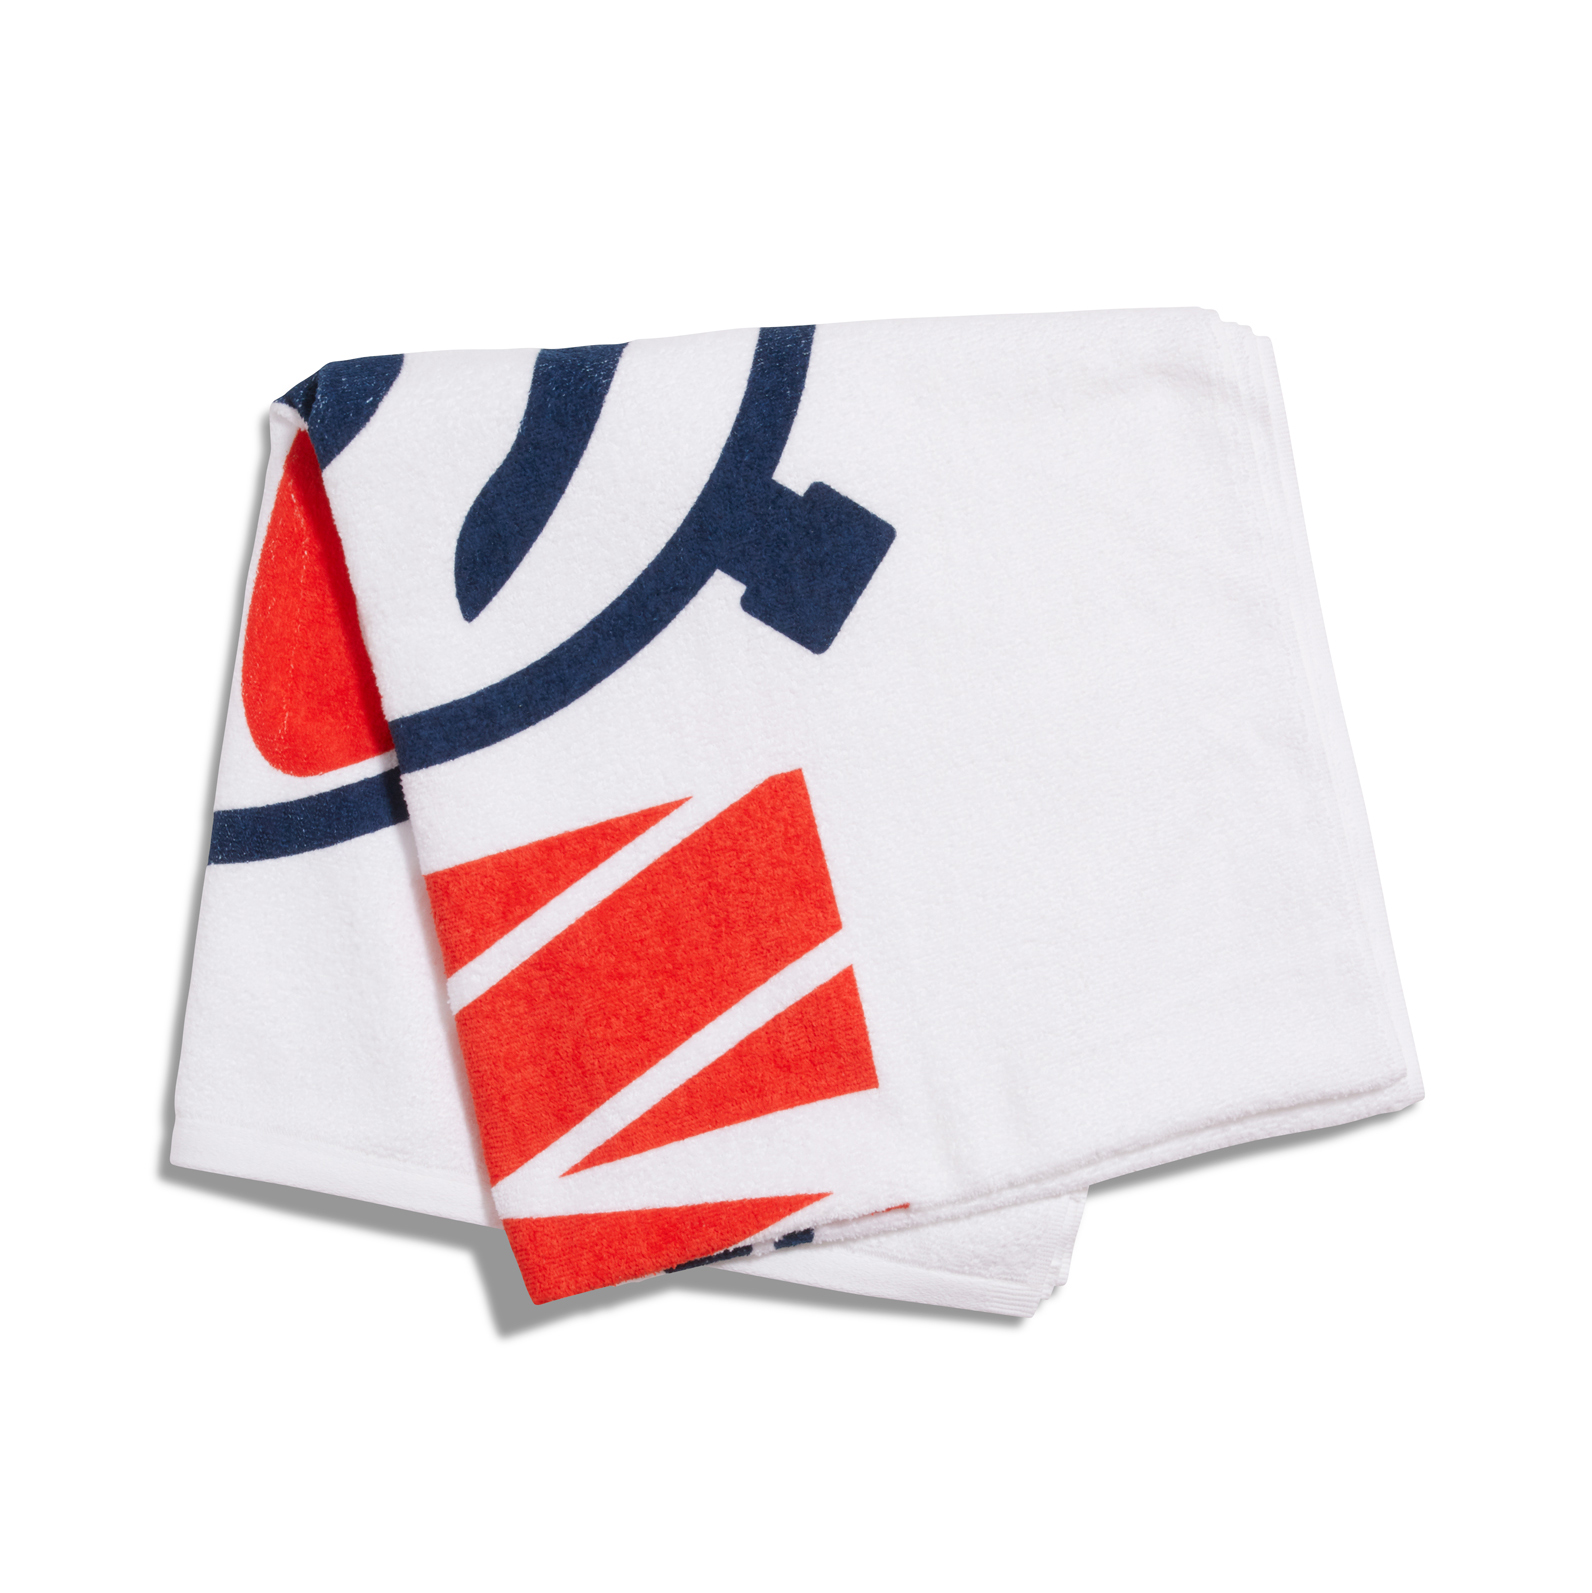 masters-and-tri-towel